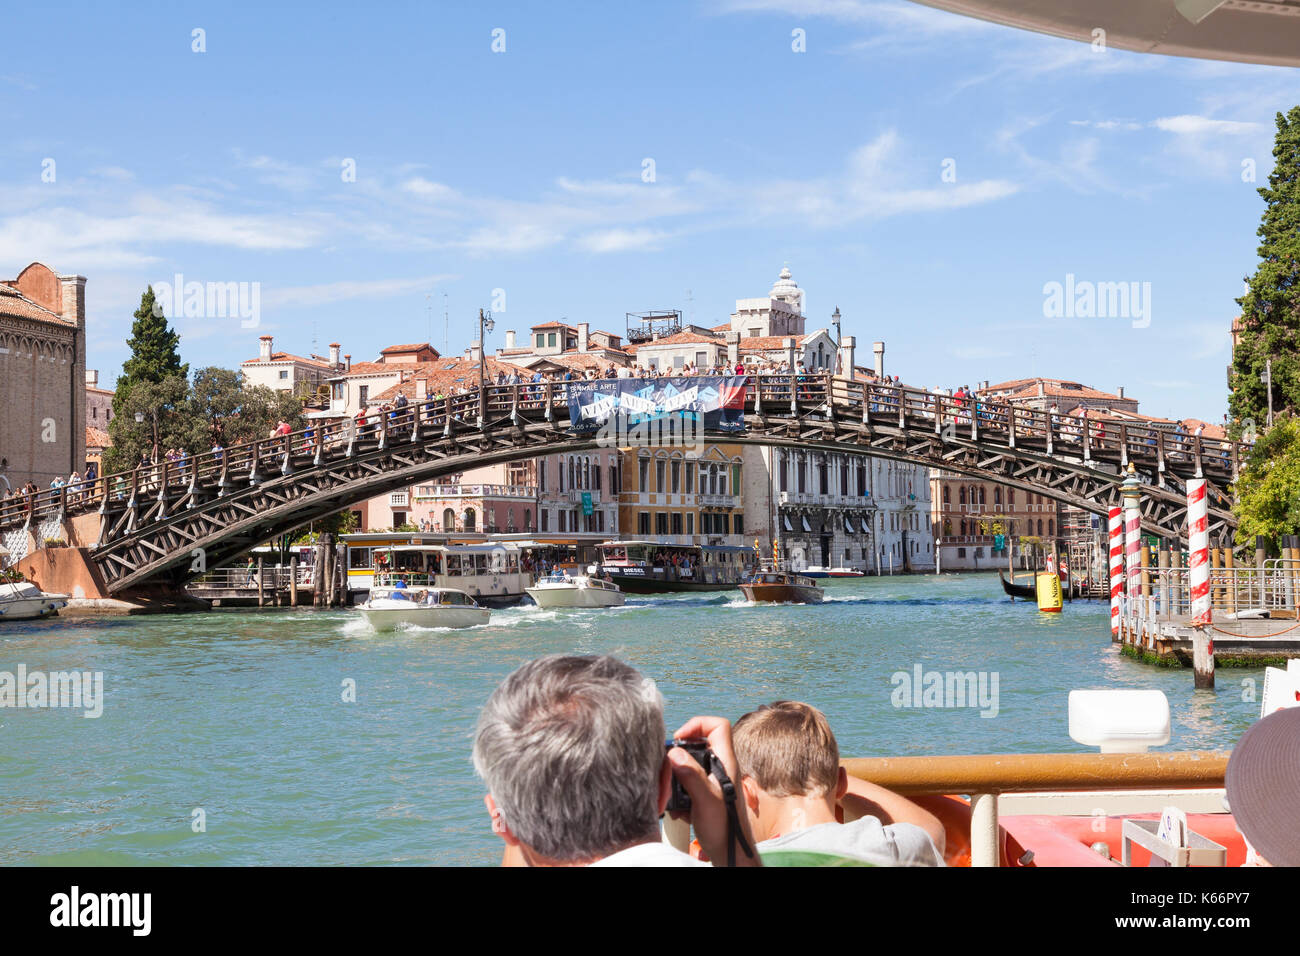 Tourists on a vaporetto travelling up the Grand Canal, Venice, Italy from a first person point of view onboard looking over the bow at the Accademia B - Stock Image